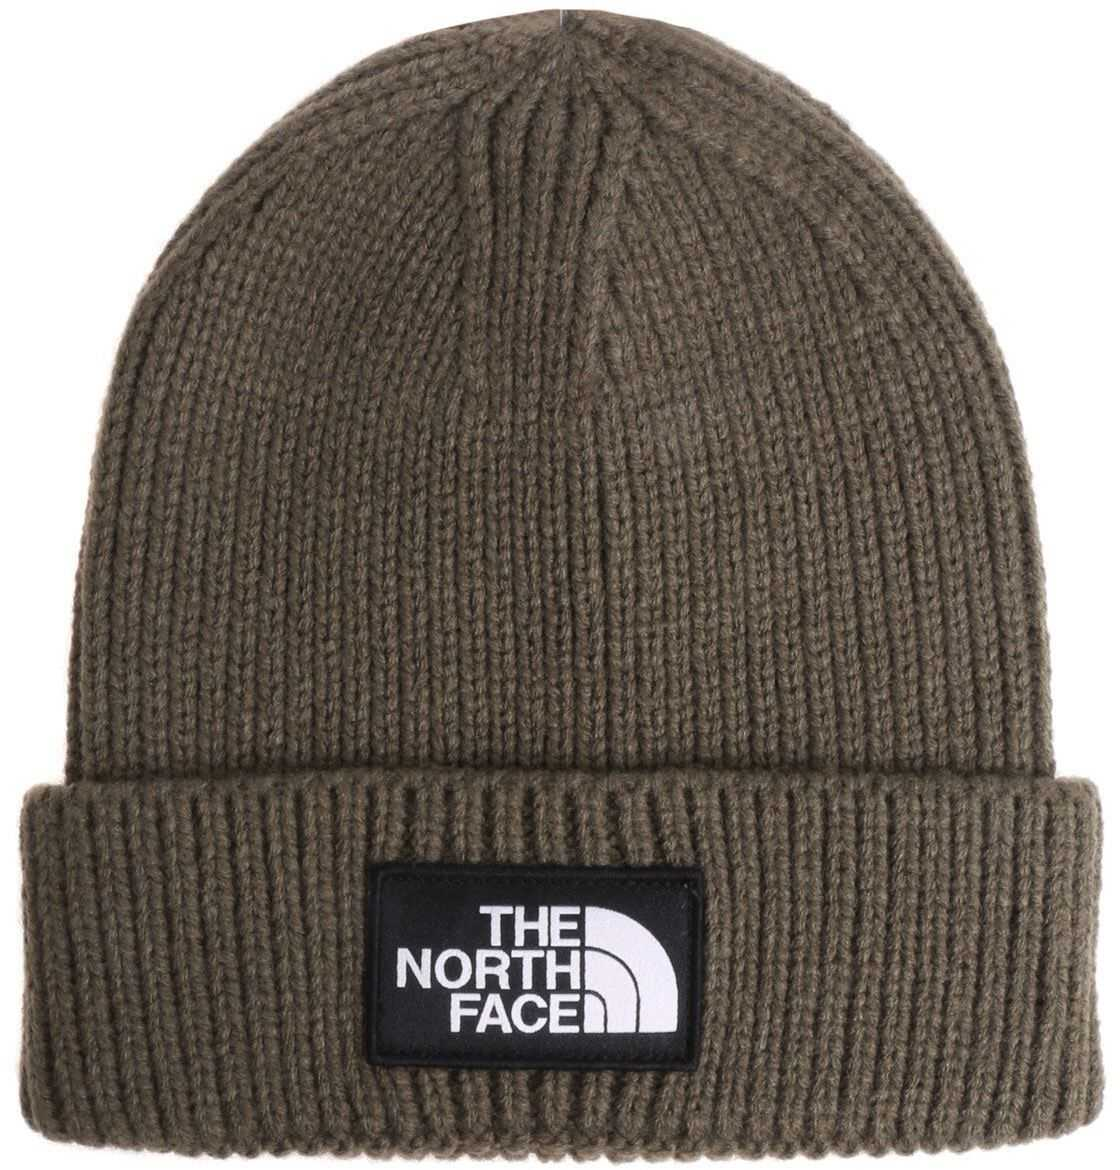 The North Face Green Beanie With Logo Green